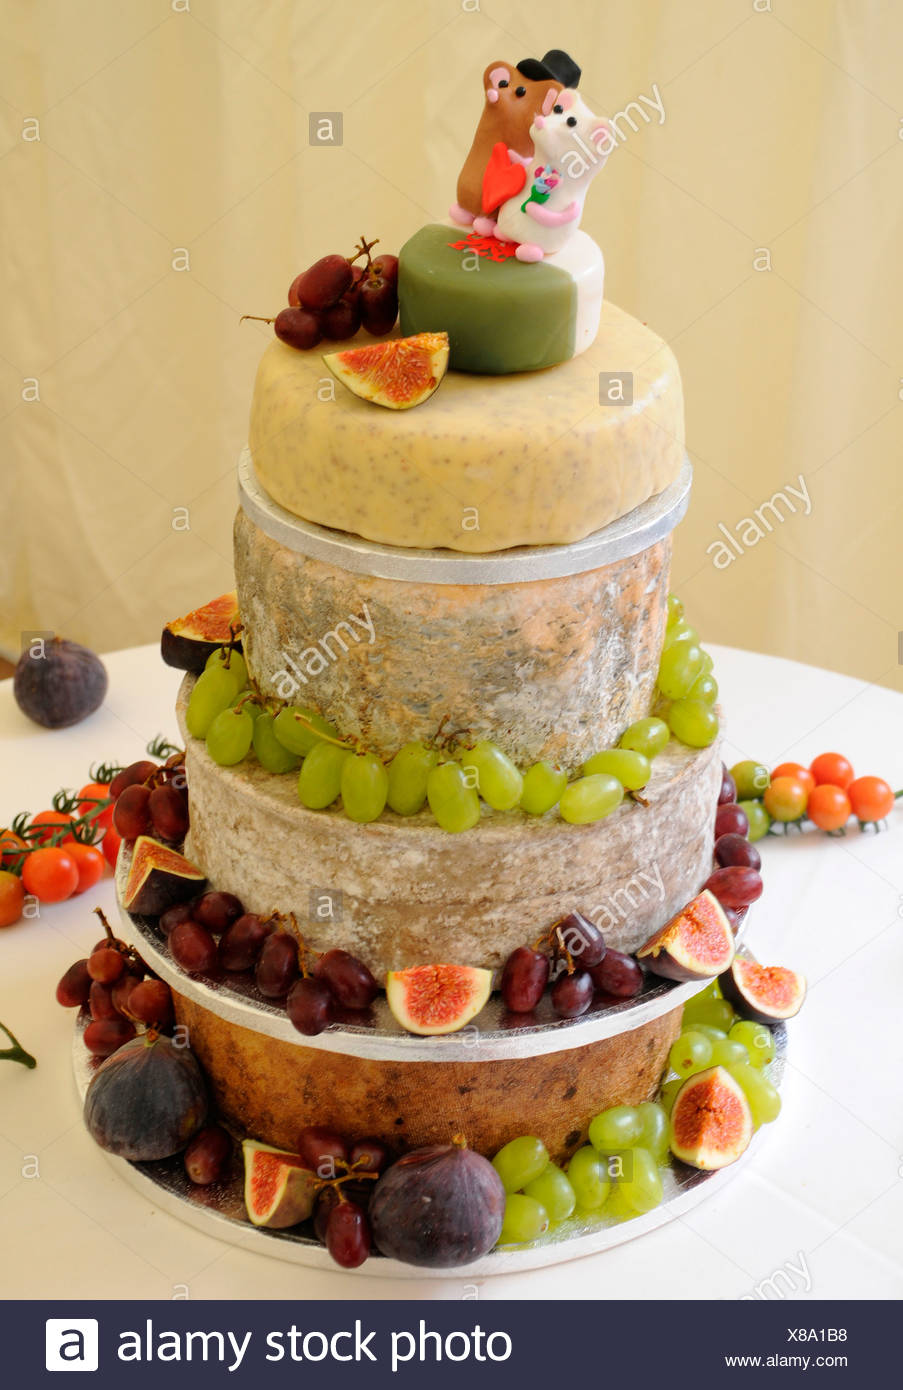 CHEESE CELEBRATION WEDDING CAKE Stock Photo: 280503756 - Alamy